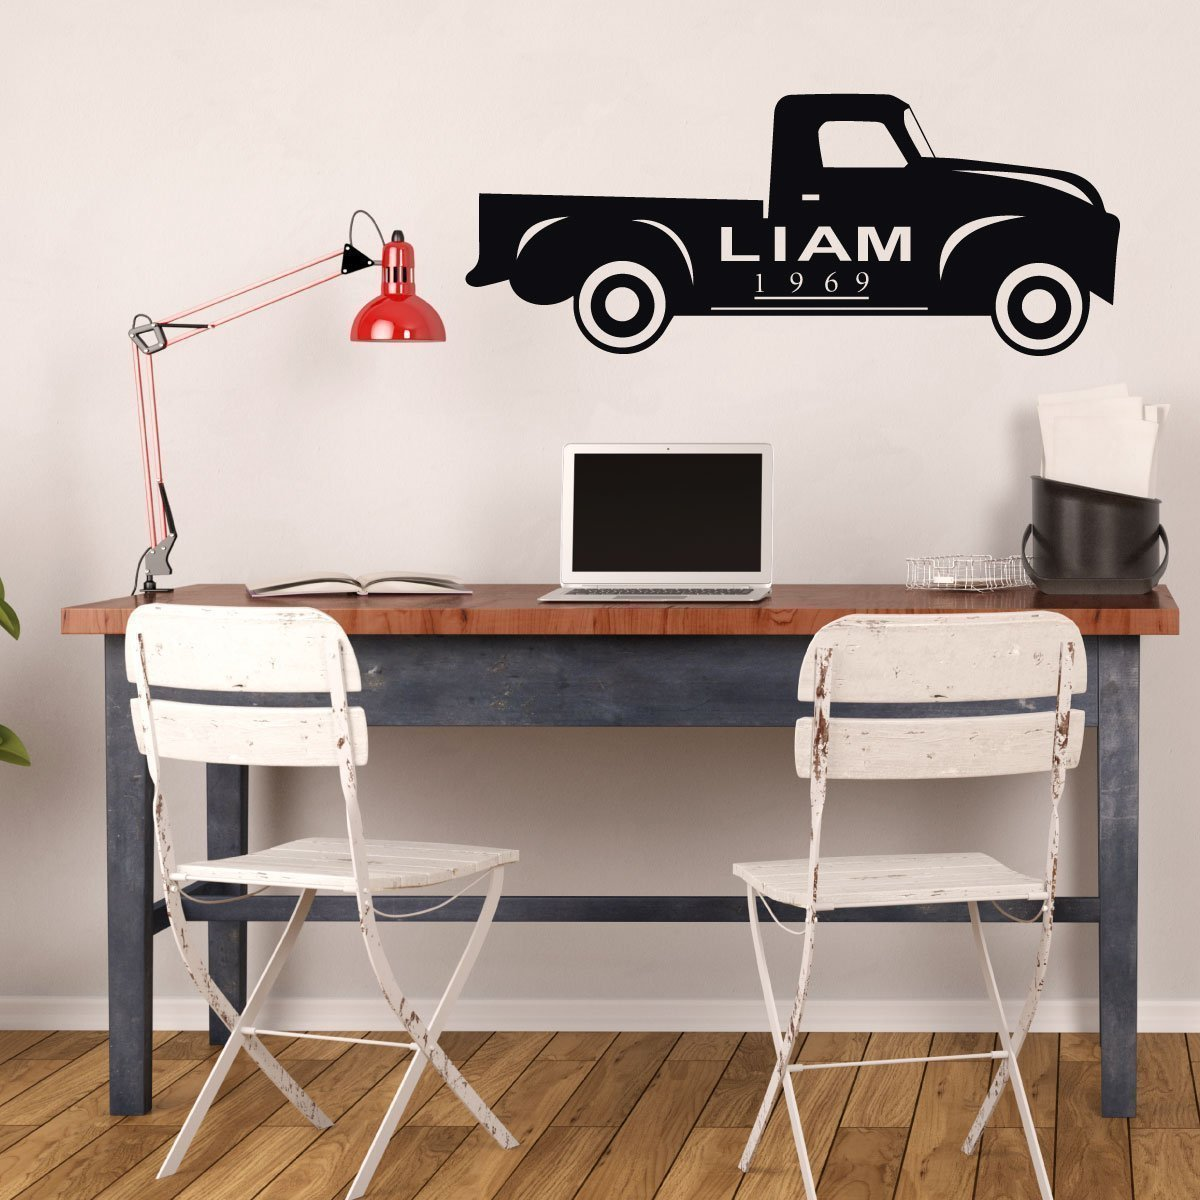 Chevy Truck Wall Decor - Vintage Wall Art - Personalized Truck - Removable Vinyl Decoration